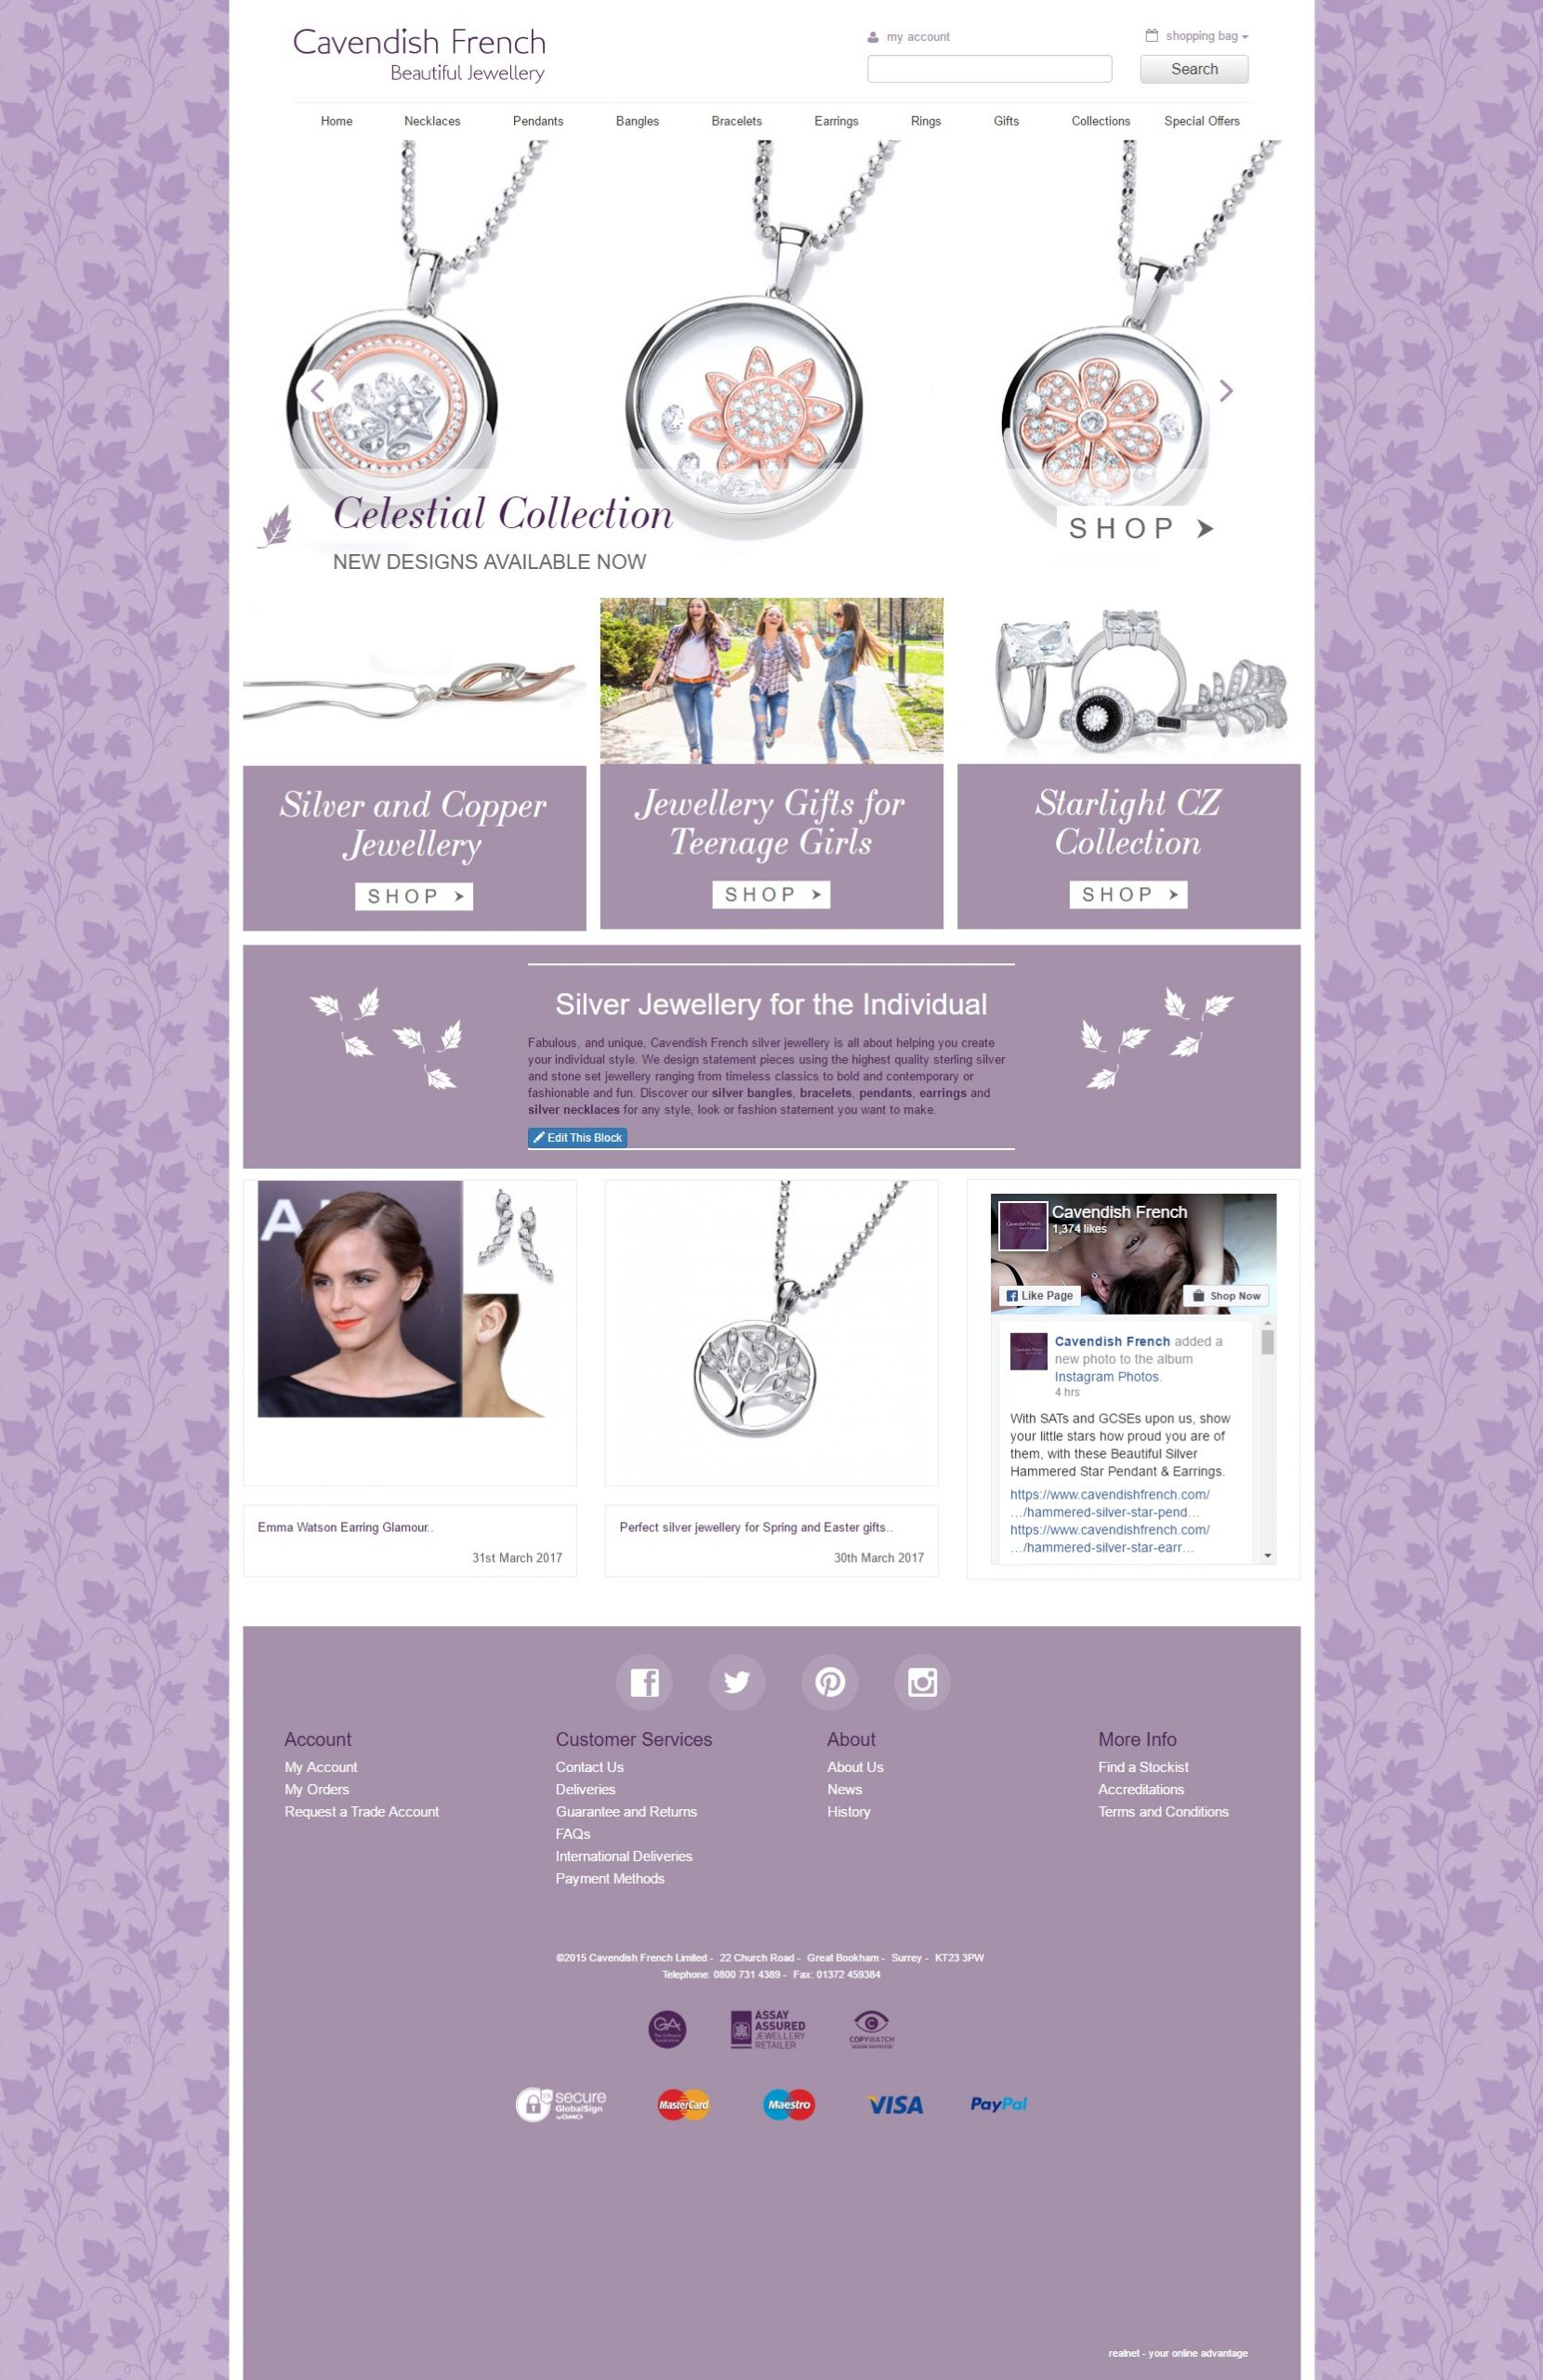 Cavendish French website home page design